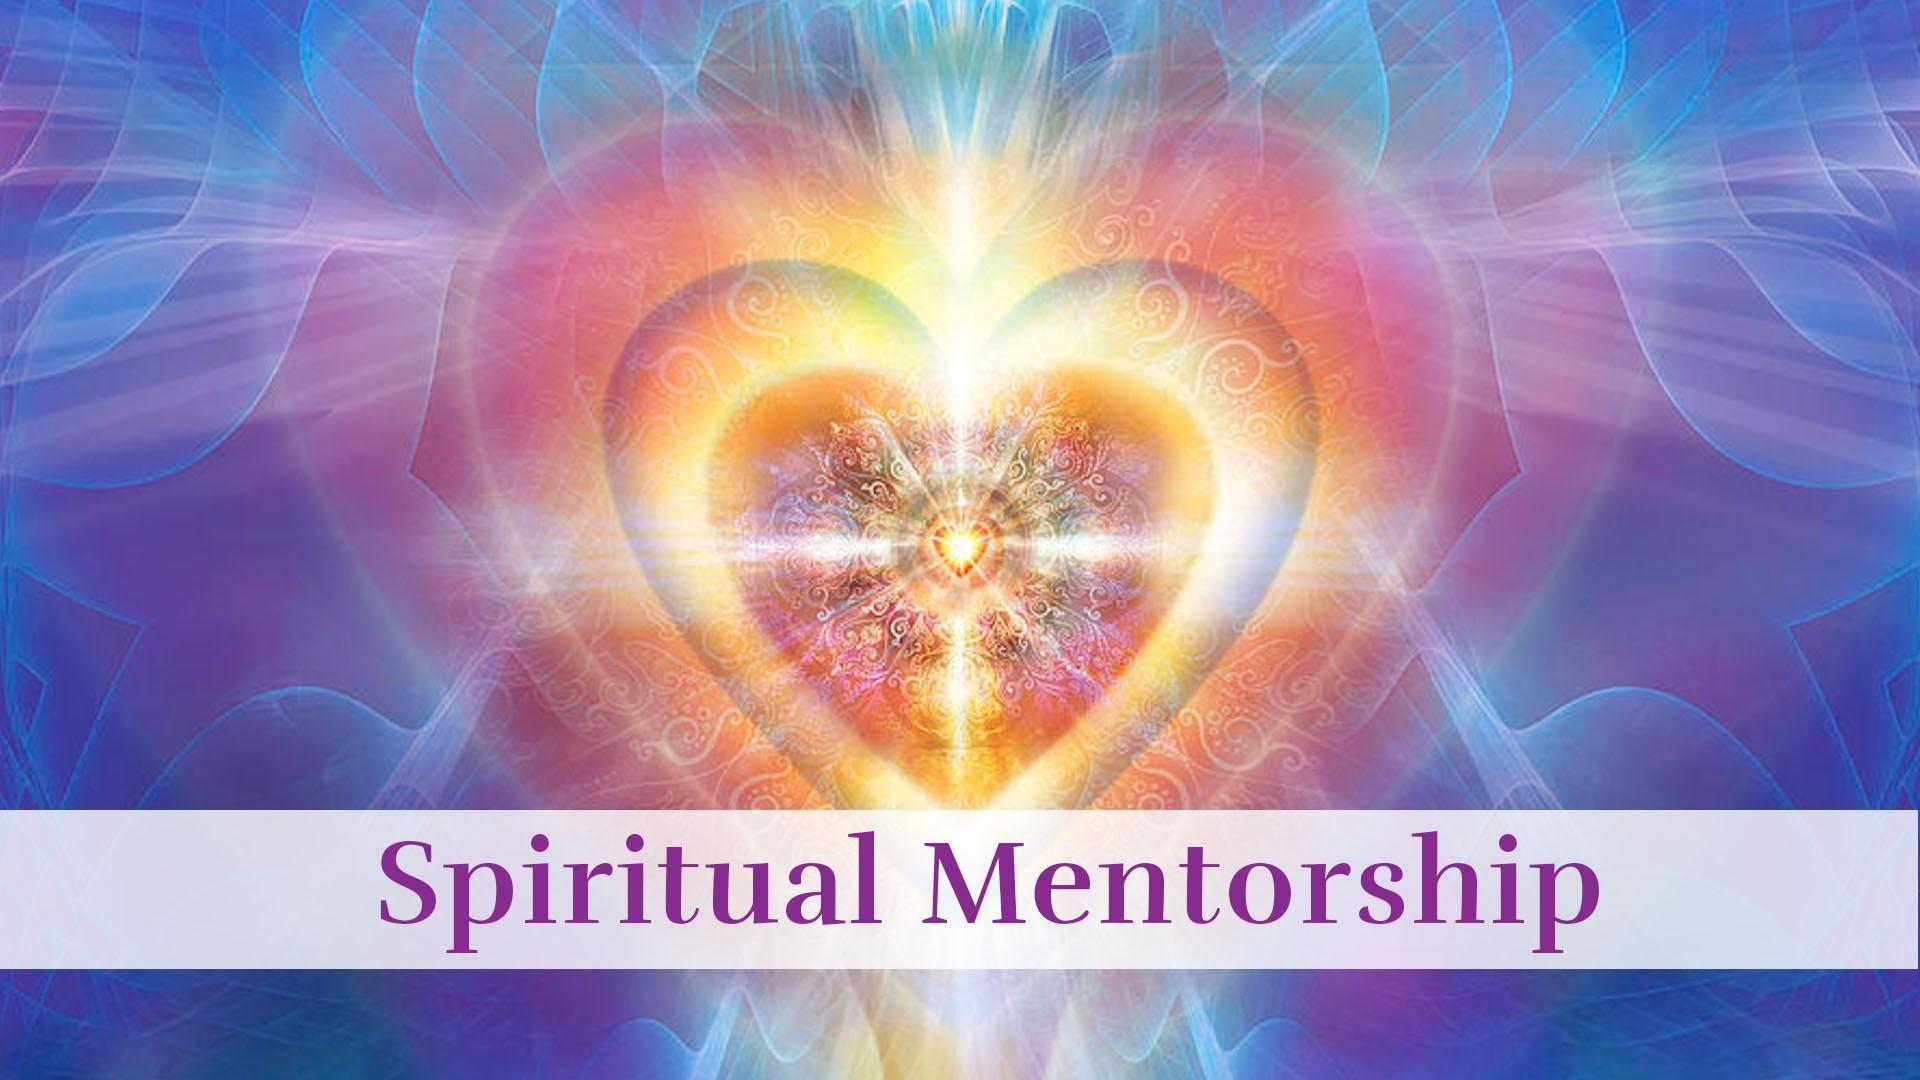 Spiritual mentorship where you learn to access channeled guidance and lead a life of your highest imagining.